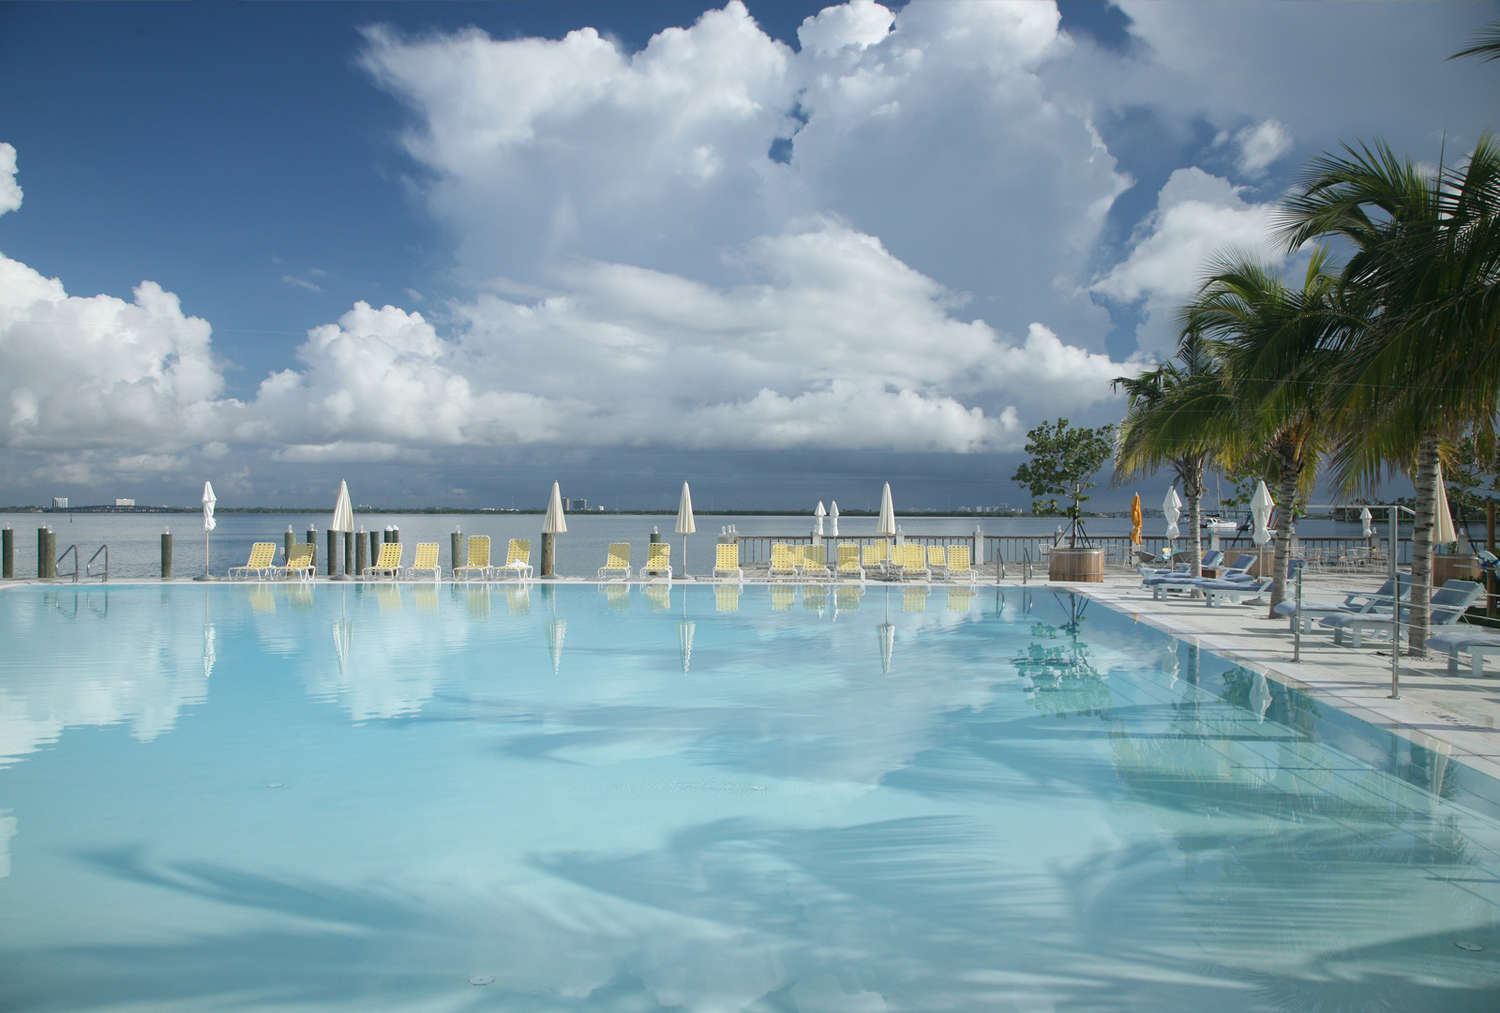 Probably The Best Hotel Pool Day Passes In Miami And South Beach